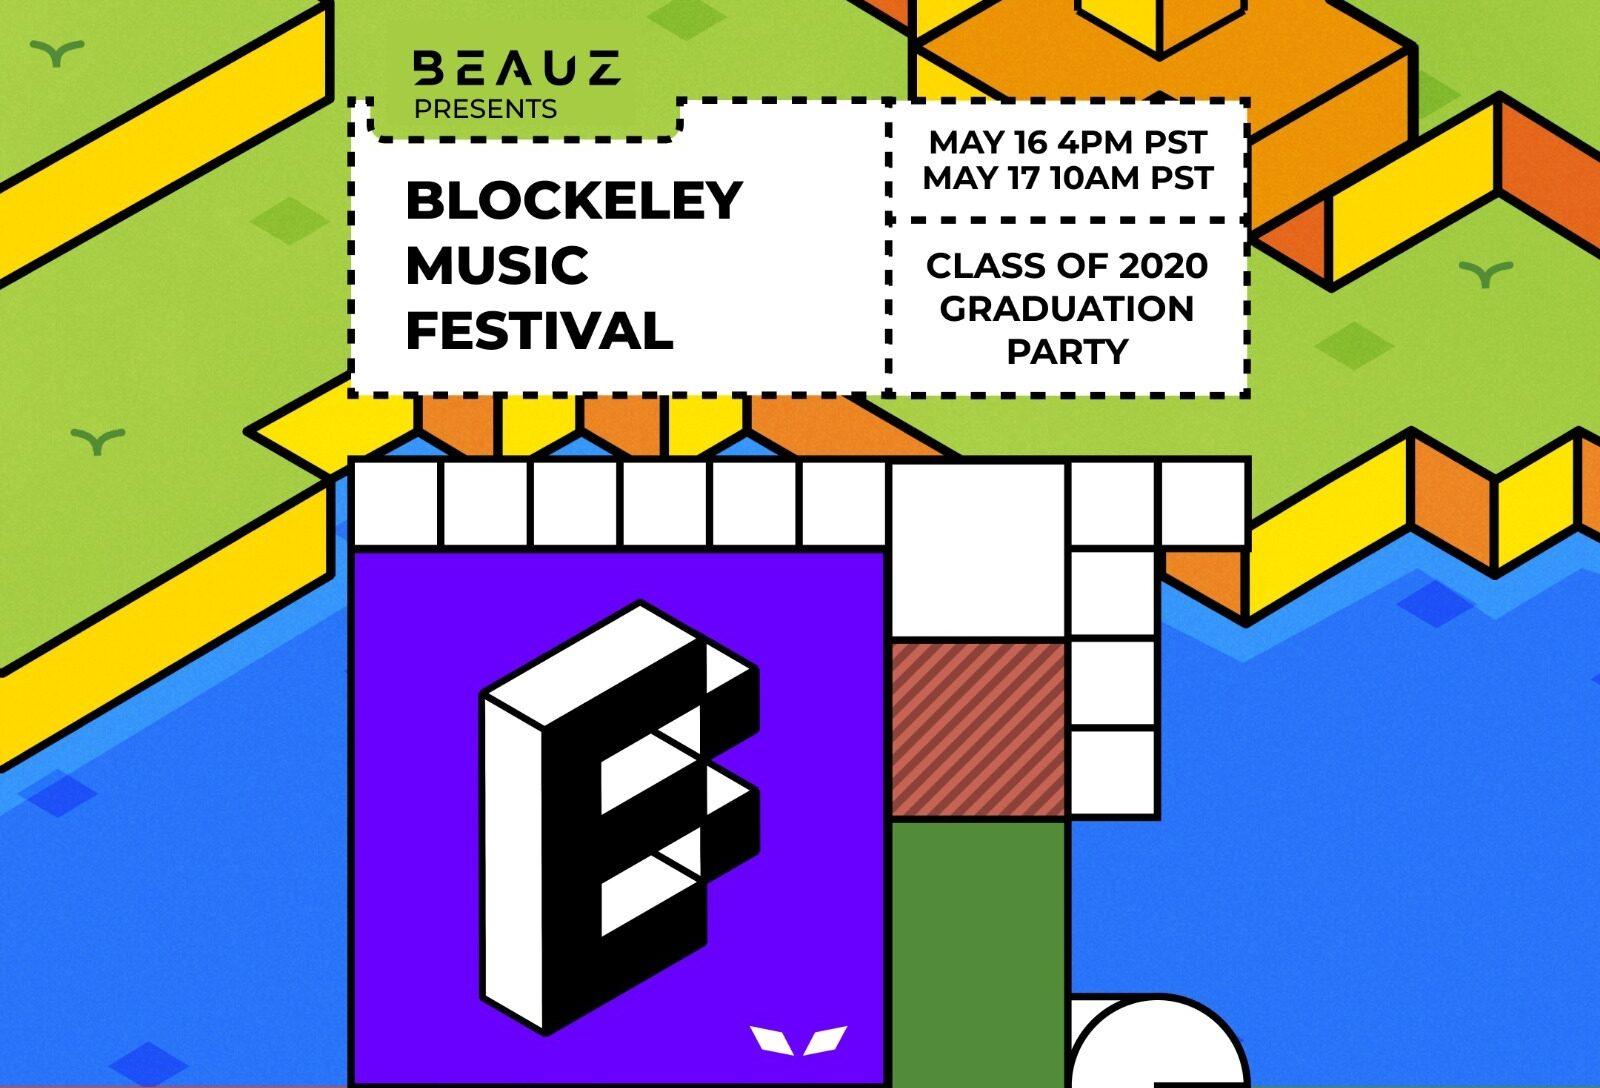 Blockeley Music Festival